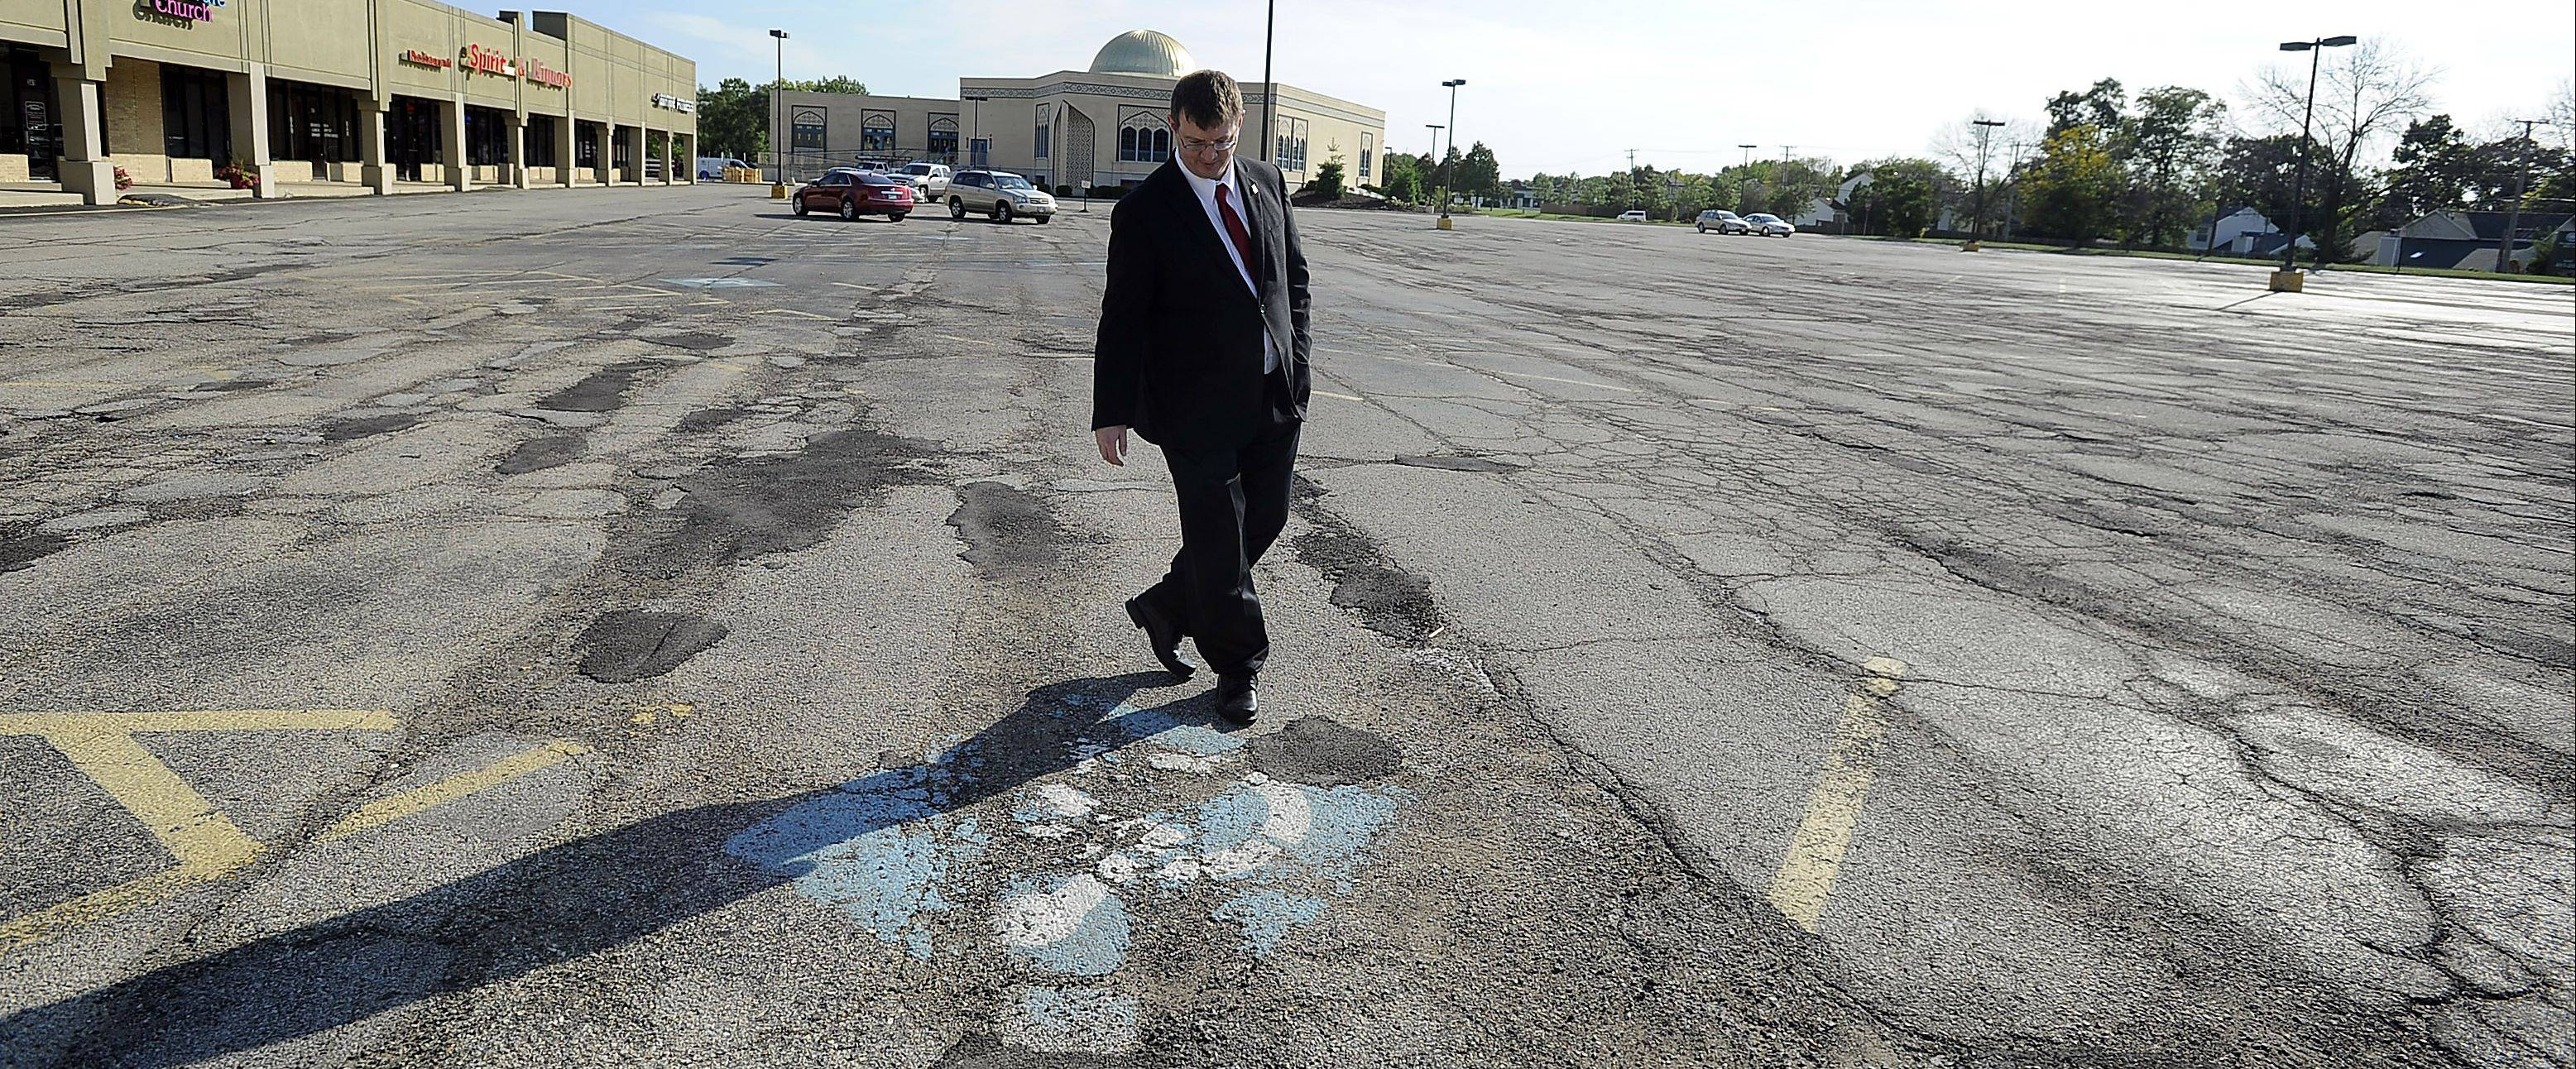 Streamwood resident Andrew Straw points out a poorly displayed handicapped parking spot. Straw recently sent demand letters to several businesses that are in violation of the Americans with Disabilities Act.